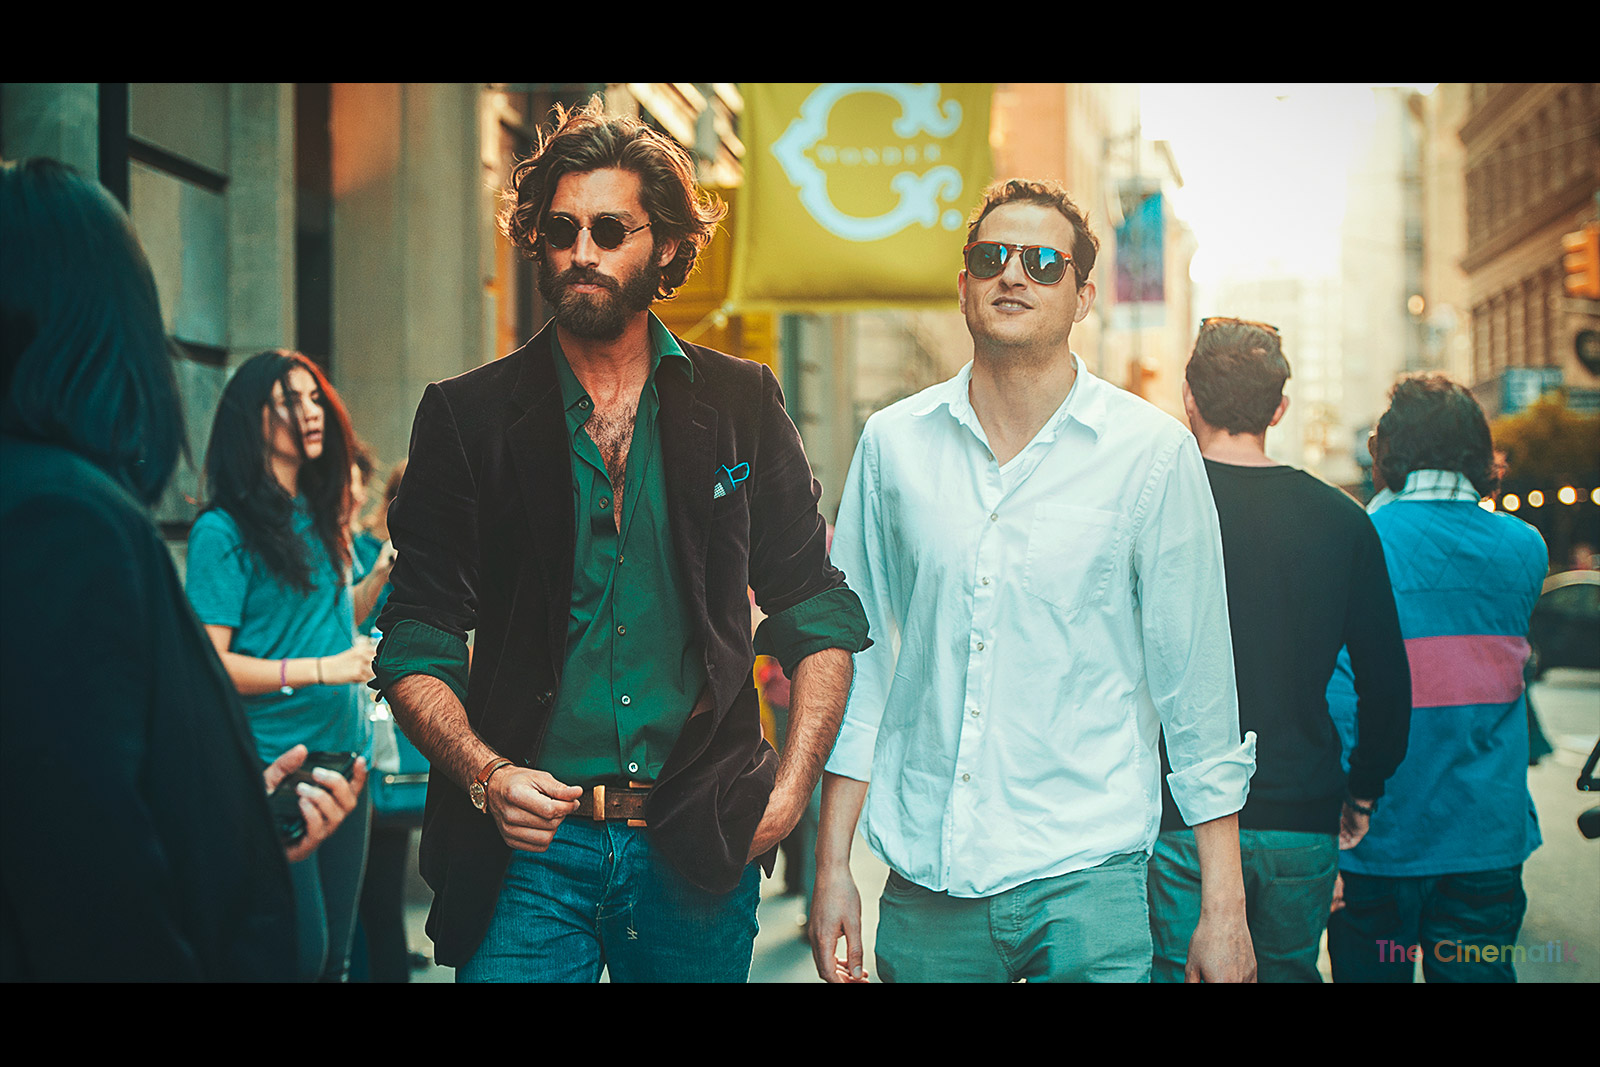 Male model Maximiliano Patane street style cinematic photograph in New York by Kamal Lahmadi